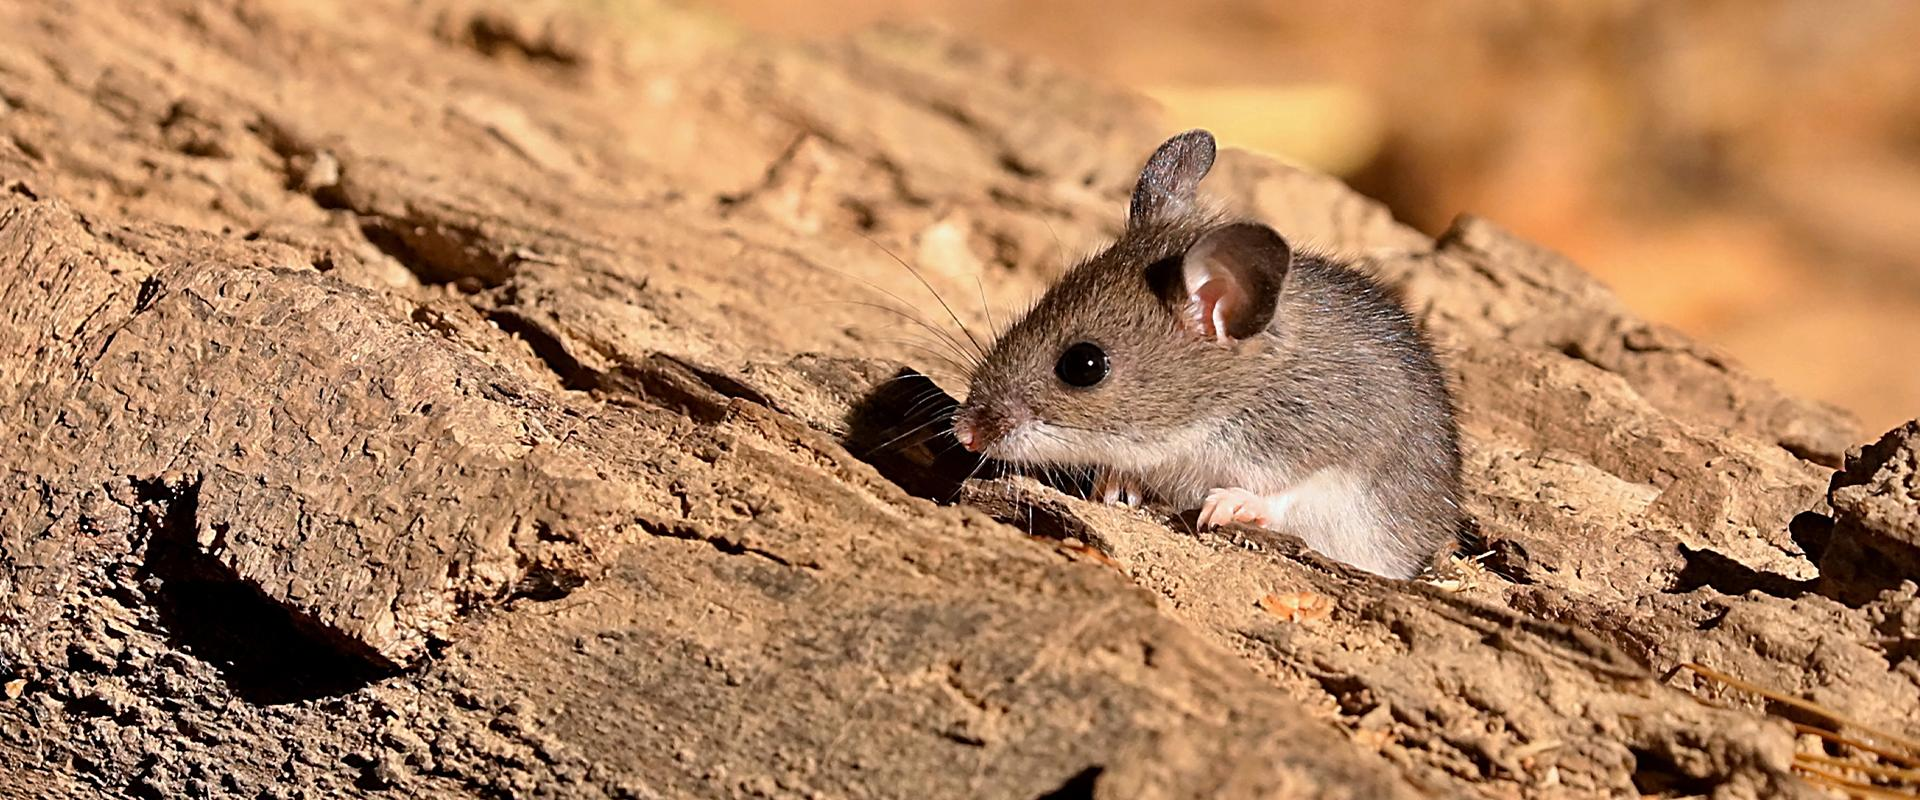 a mouse resting on a log